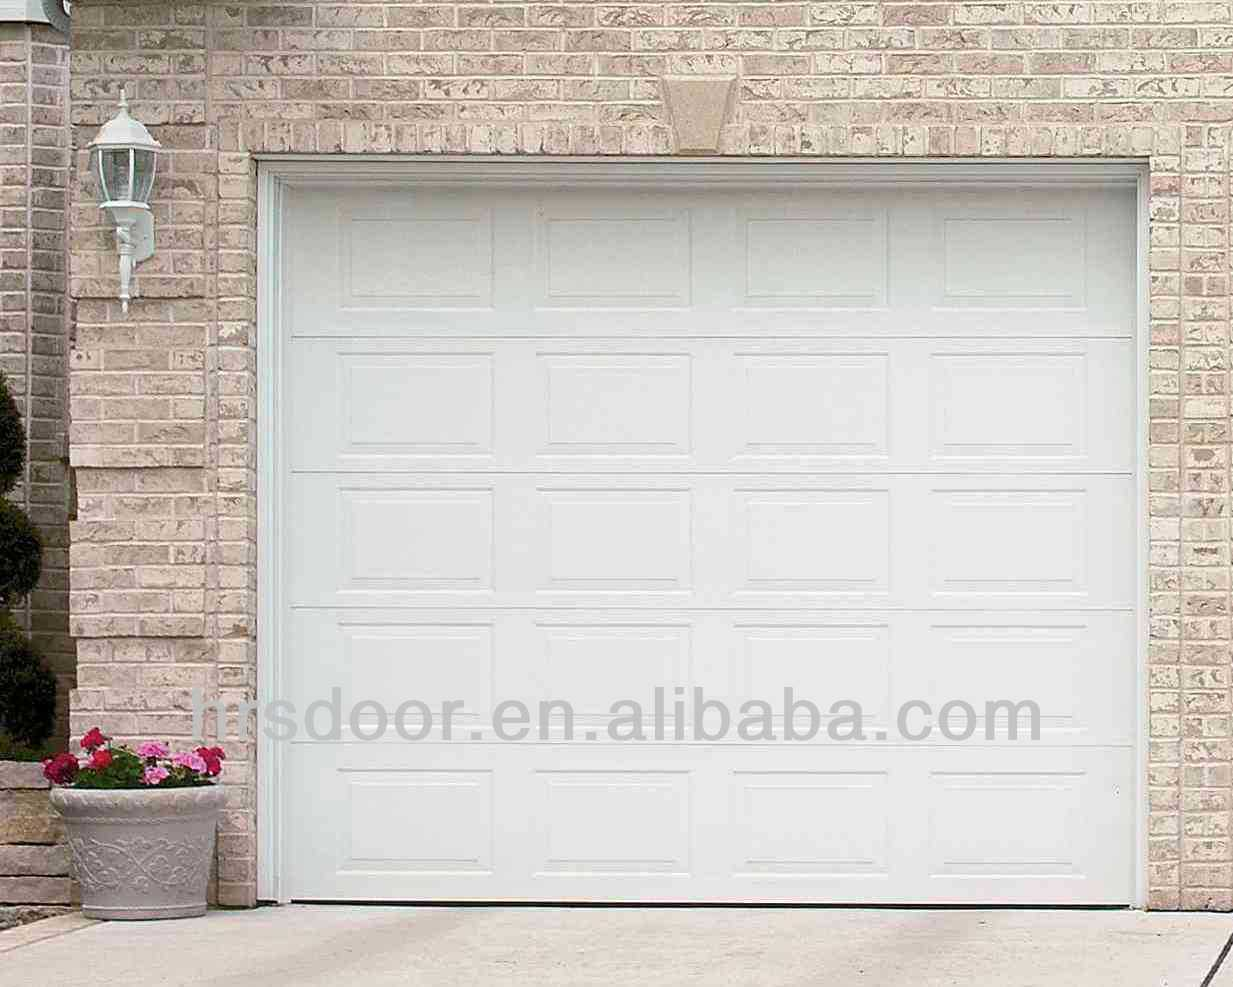 Fold Up Garage Doors, Fold Up Garage Doors Suppliers and ...